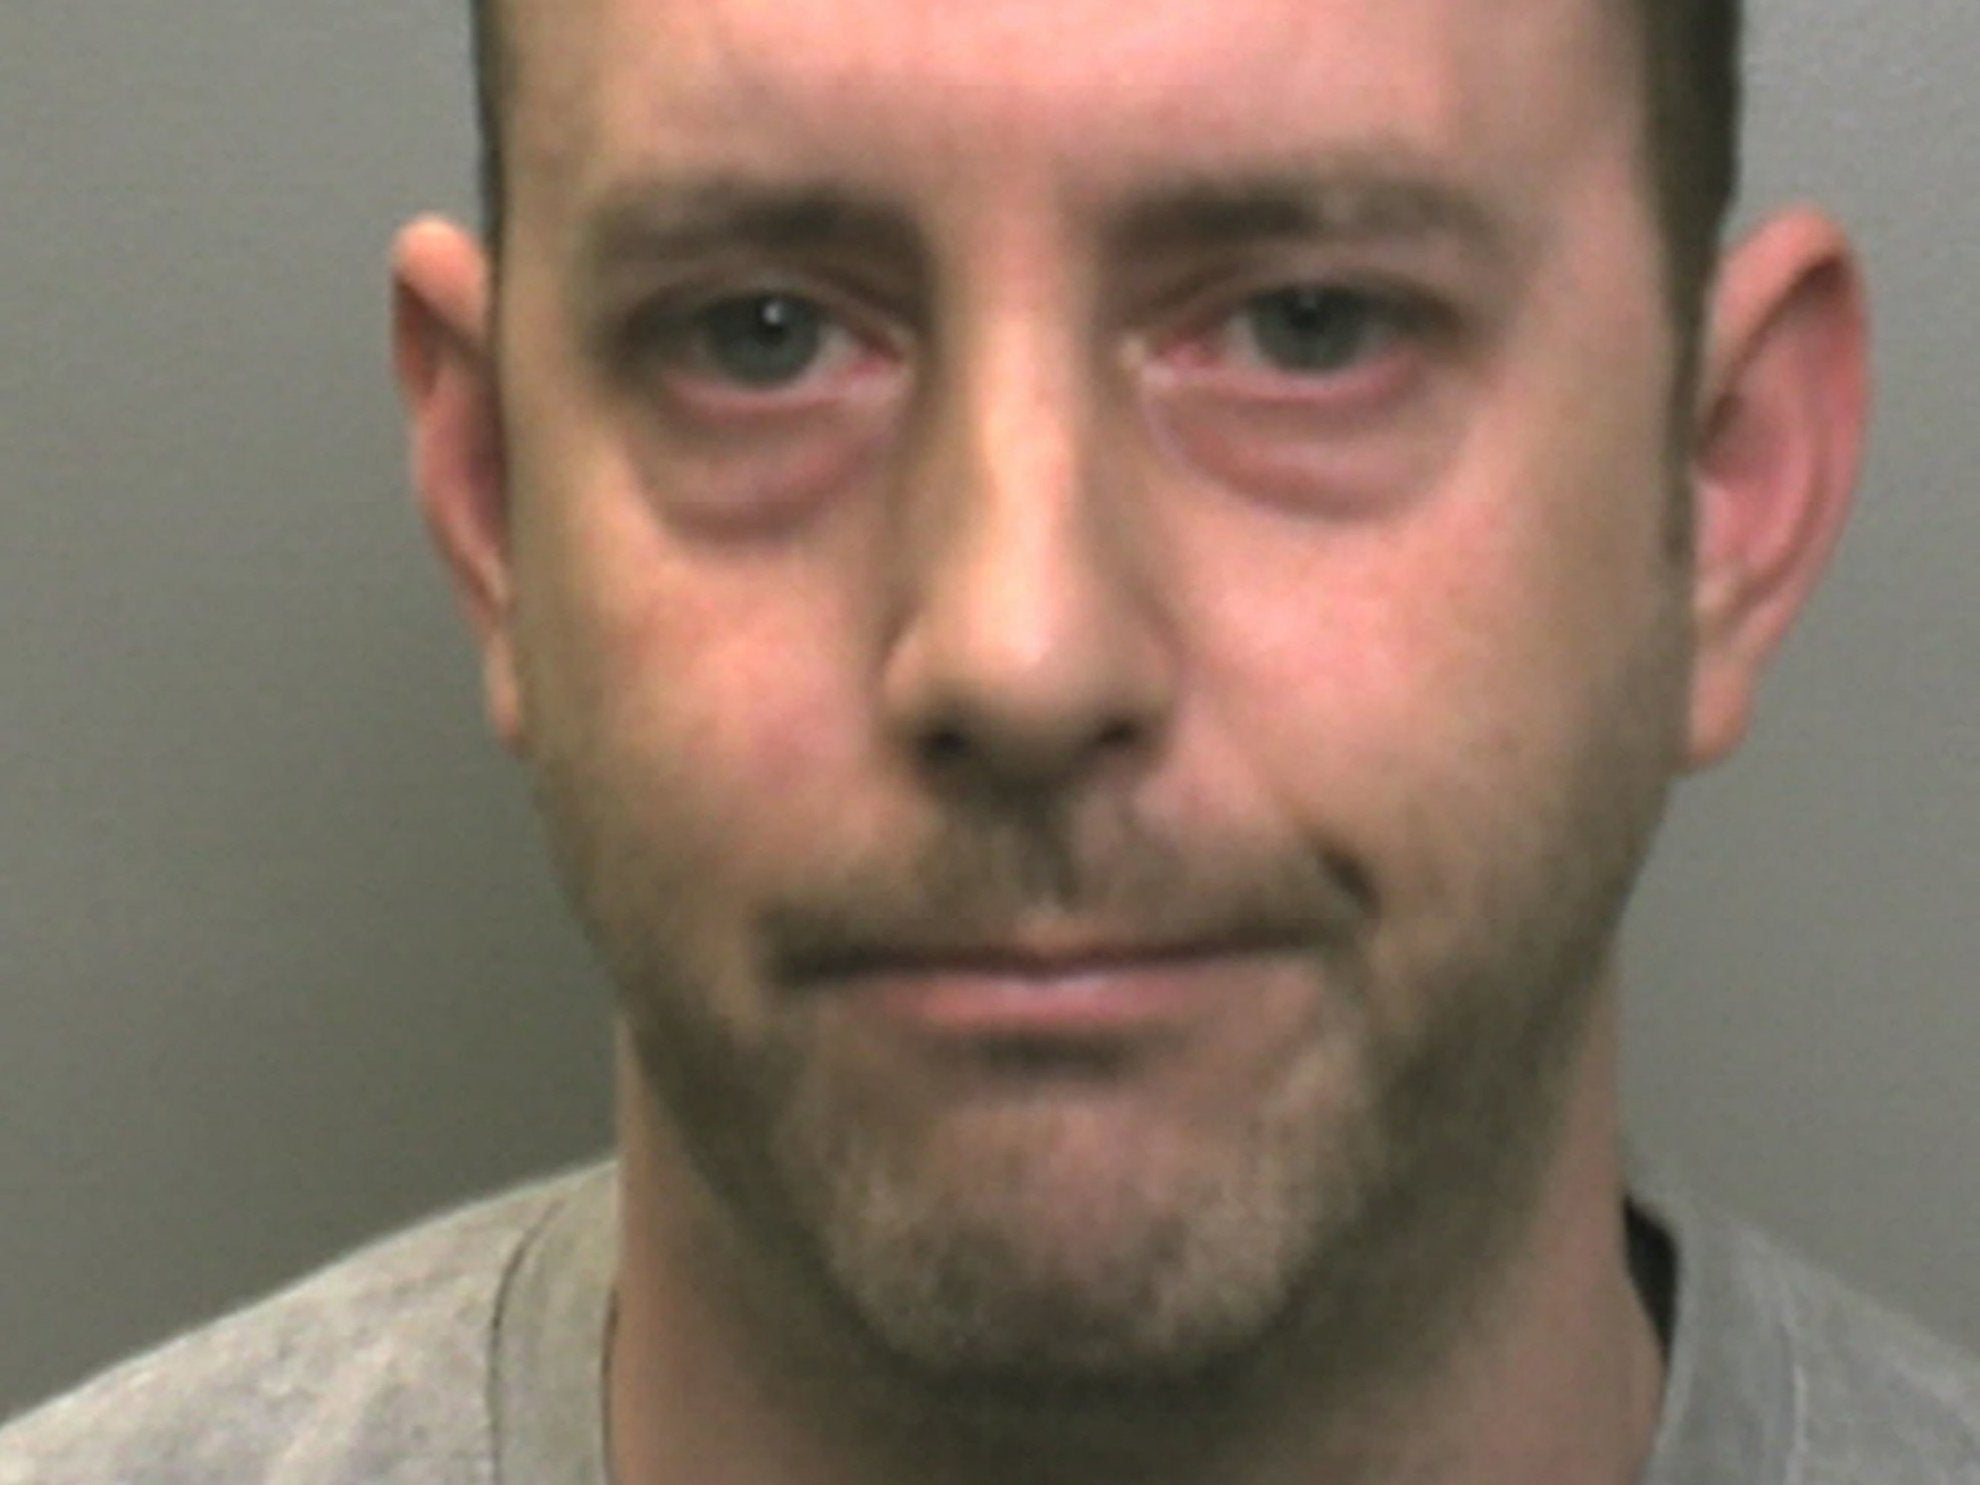 Driving Instructor Raped 14 Year Old Girl And Sexually Assaulted